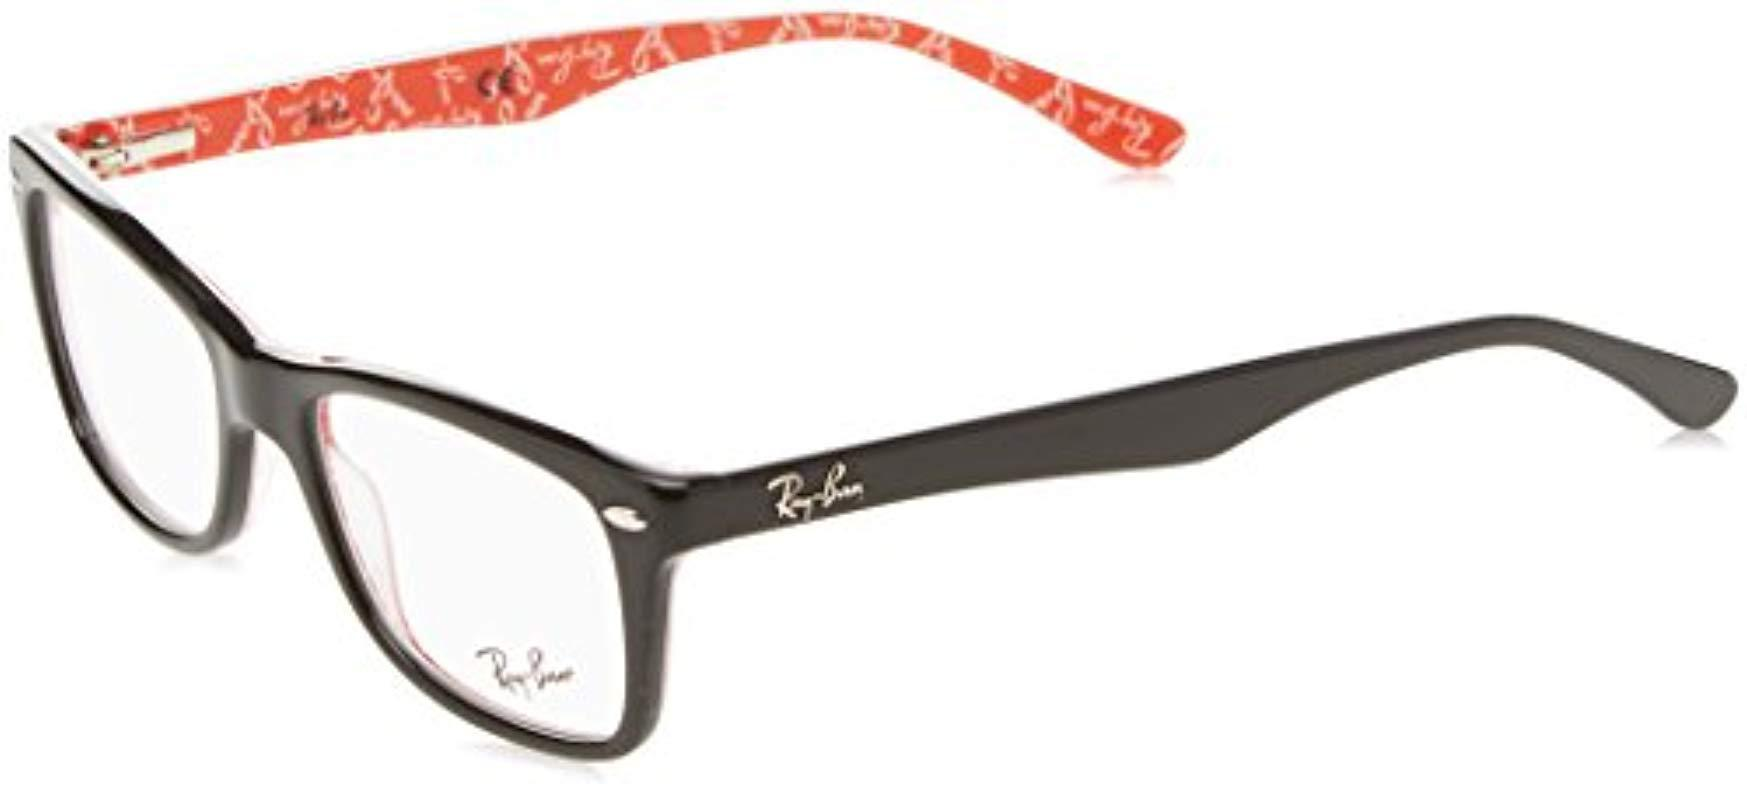 f9bc6aaaa0 Ray-Ban Rx5228 Glasses In Havana Brown Rx5228 5545 50 in Gray for ...